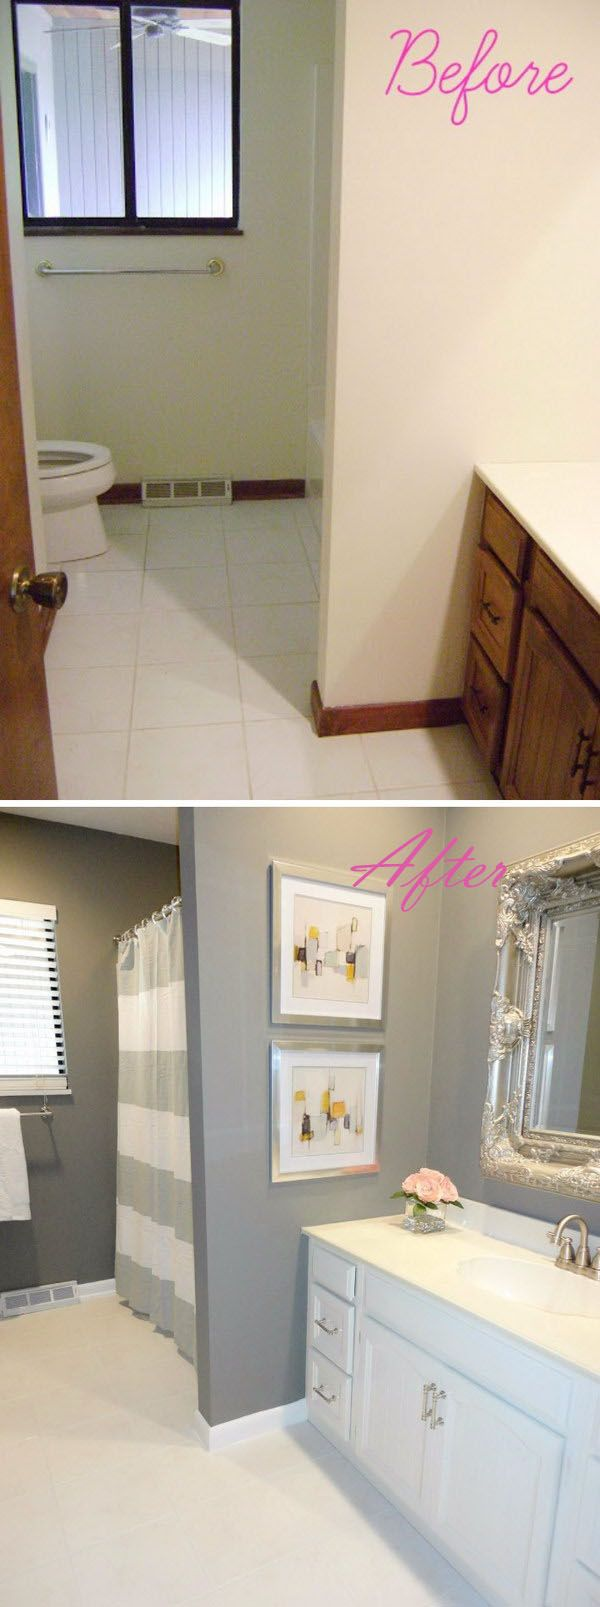 Before and after 20 awesome bathroom makeovers diy bathroom remodel bathroom makeovers and Cheap bathroom remodel before and after